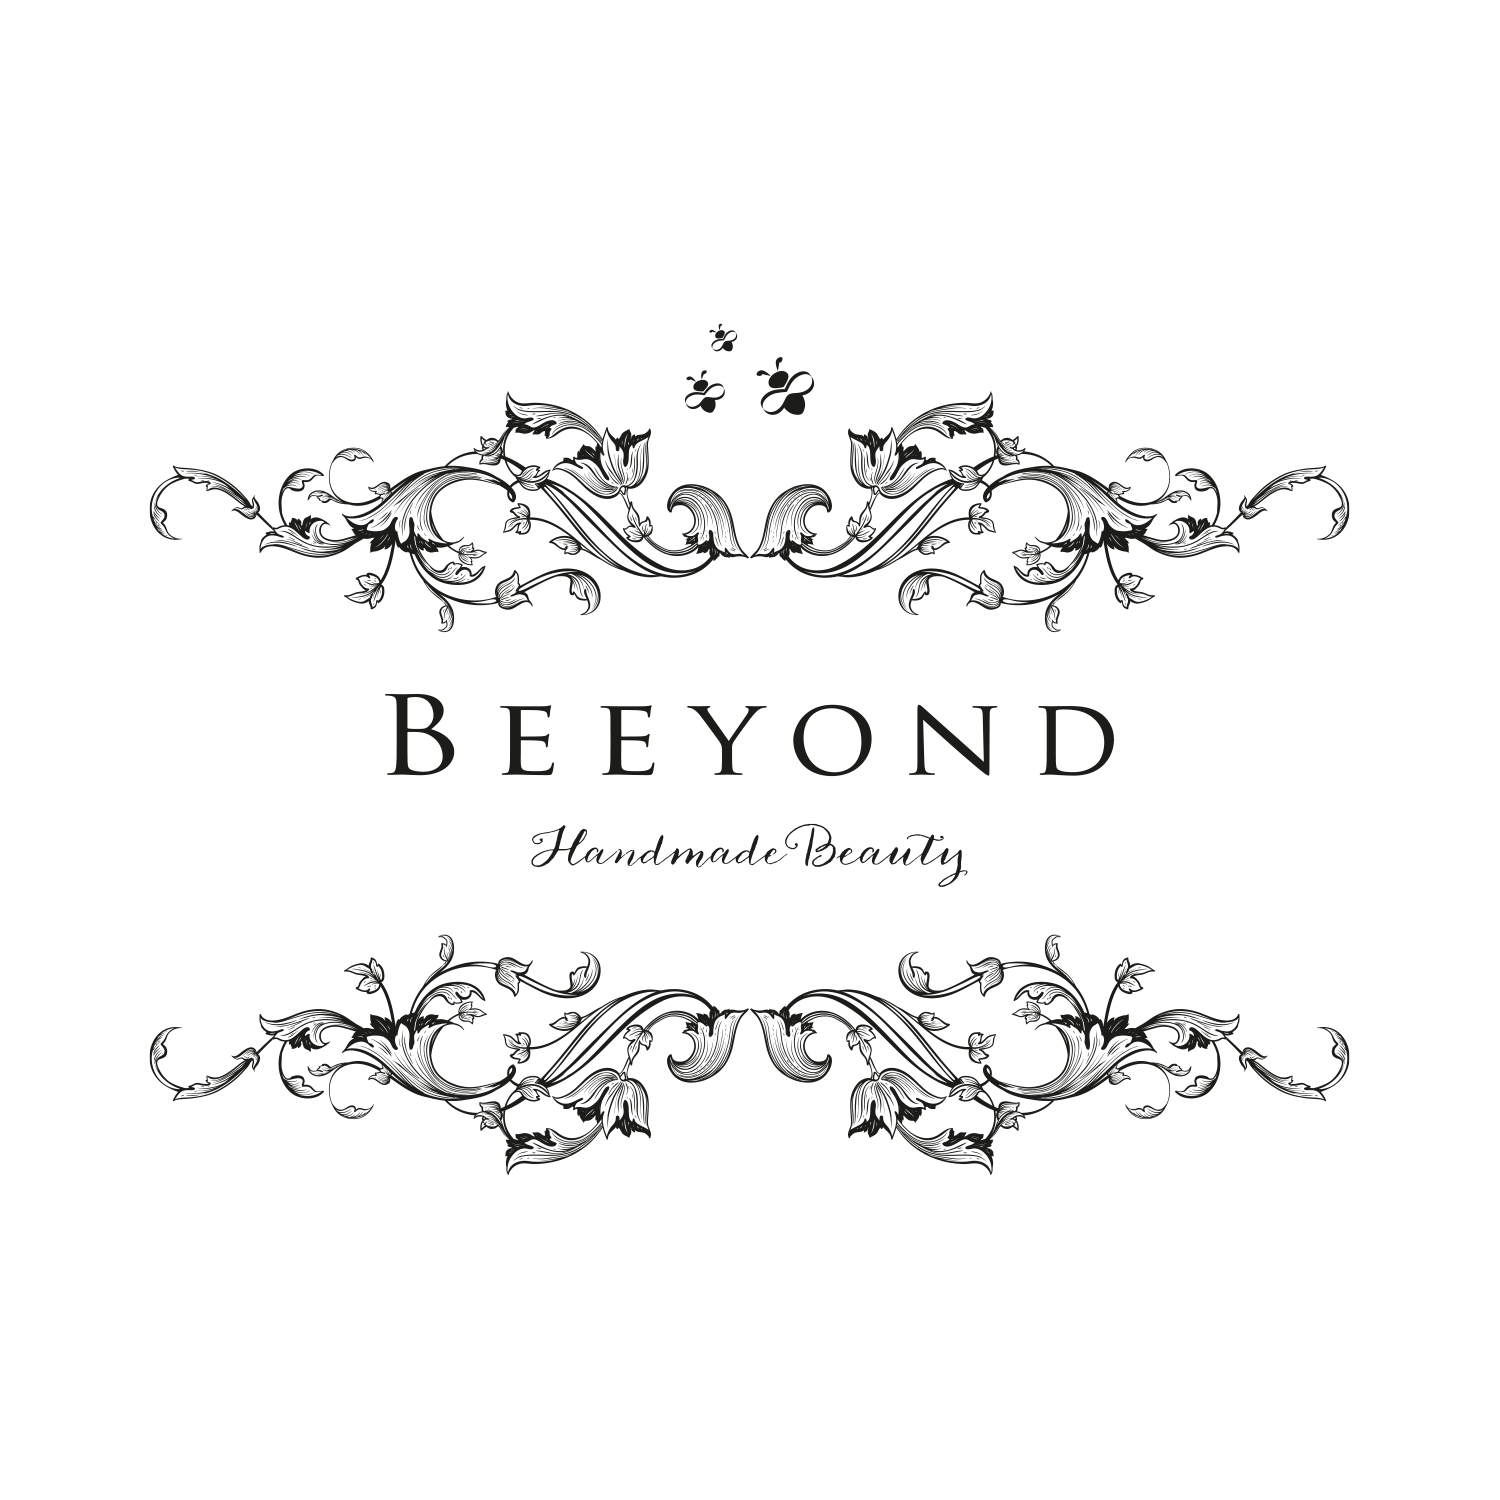 Beeyond the Hive Logo Design - Denver, CO Health and Beauty Company